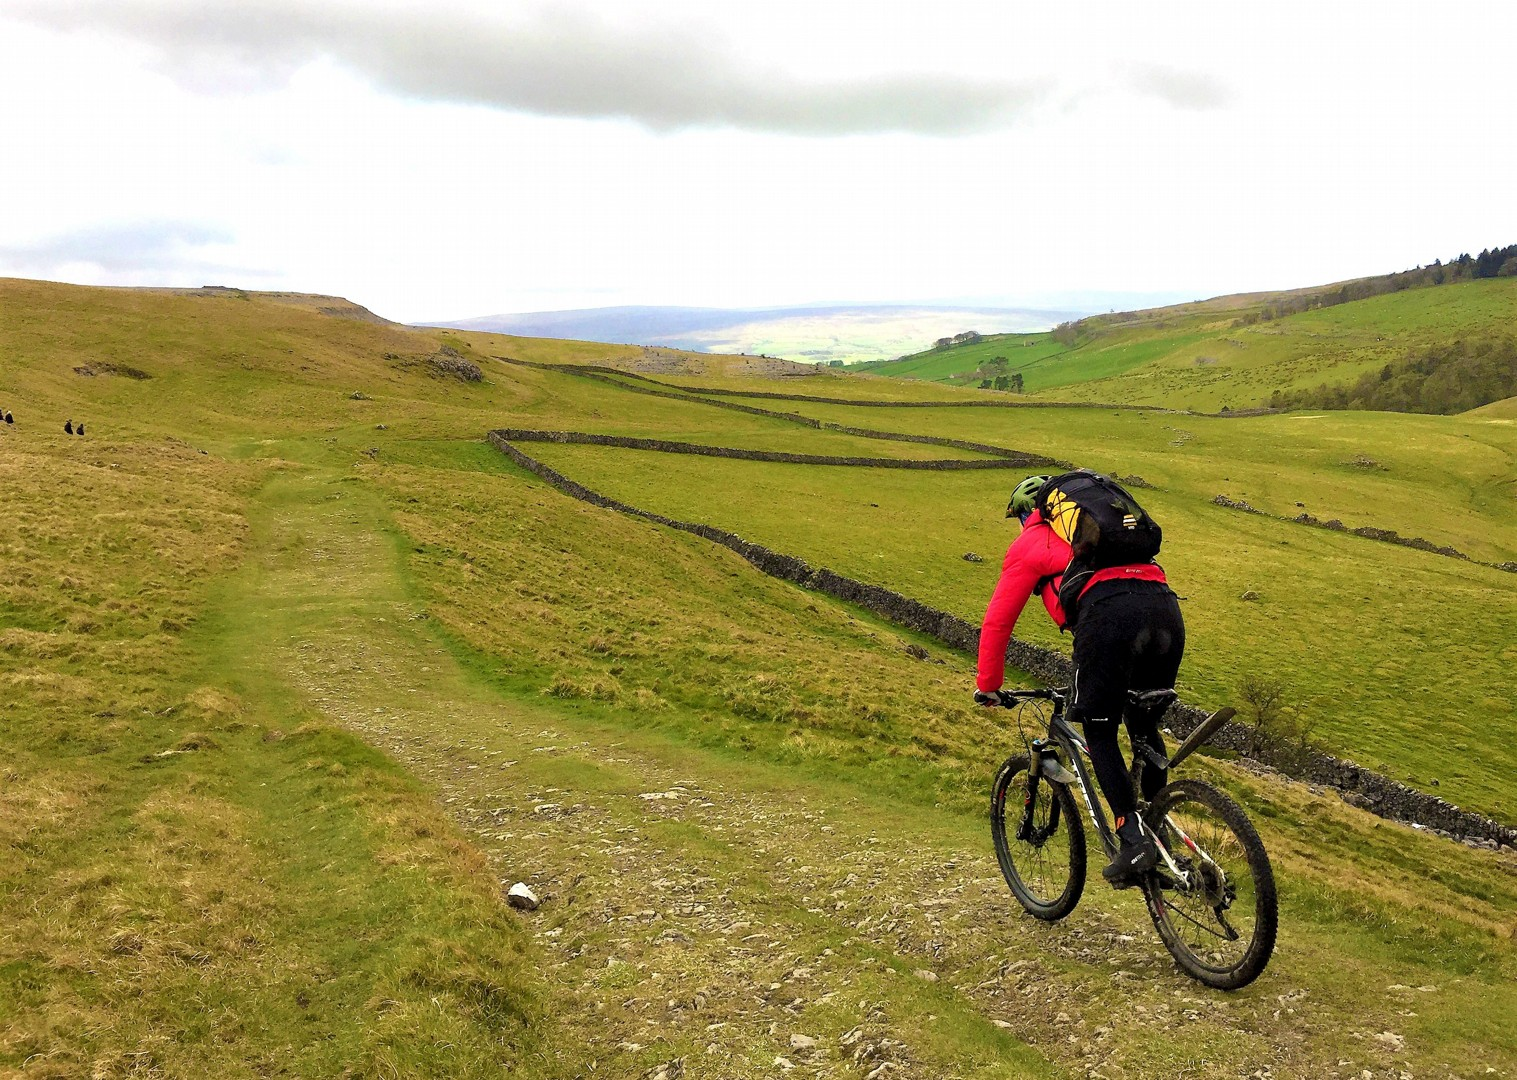 mtb-mountain-biking-pennine-bridleway-skedaddle.jpg - UK - Pennine Bridleway - Guided Mountain Bike Weekend - Mountain Biking